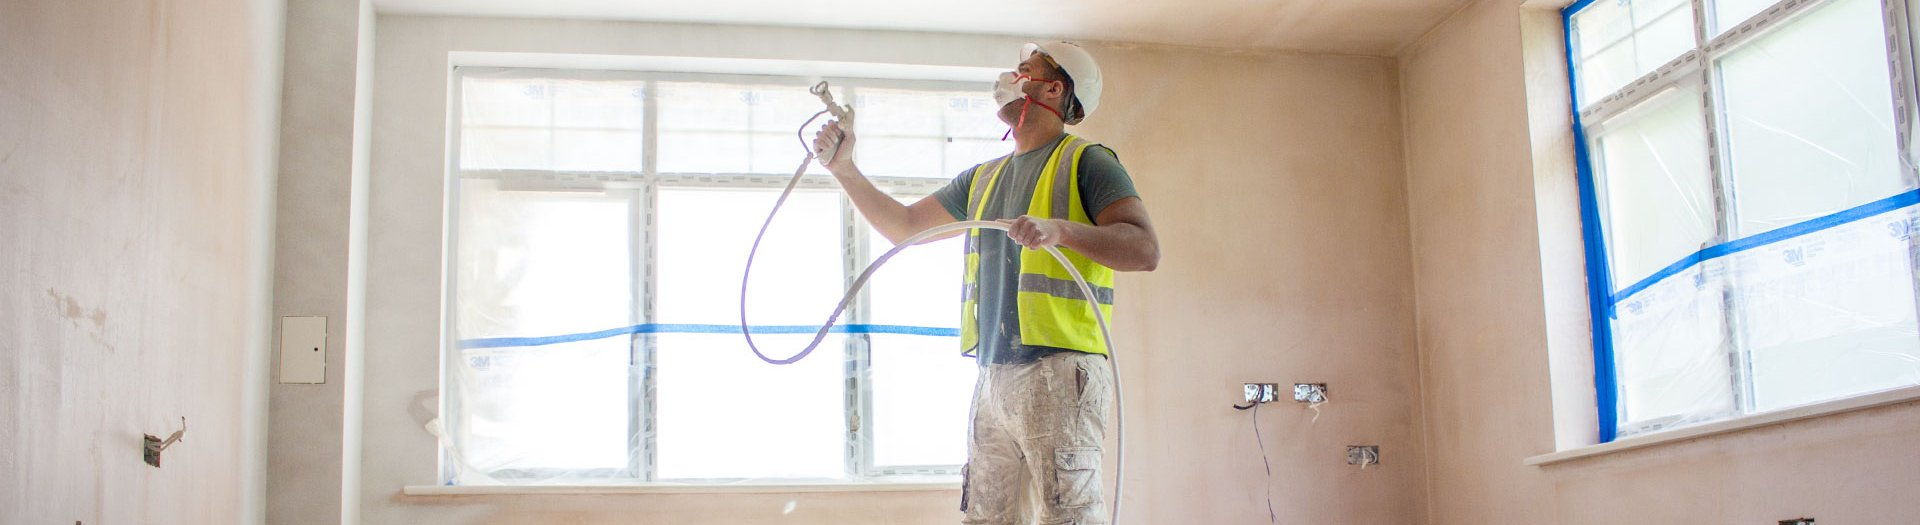 Painting and Spraying Experts